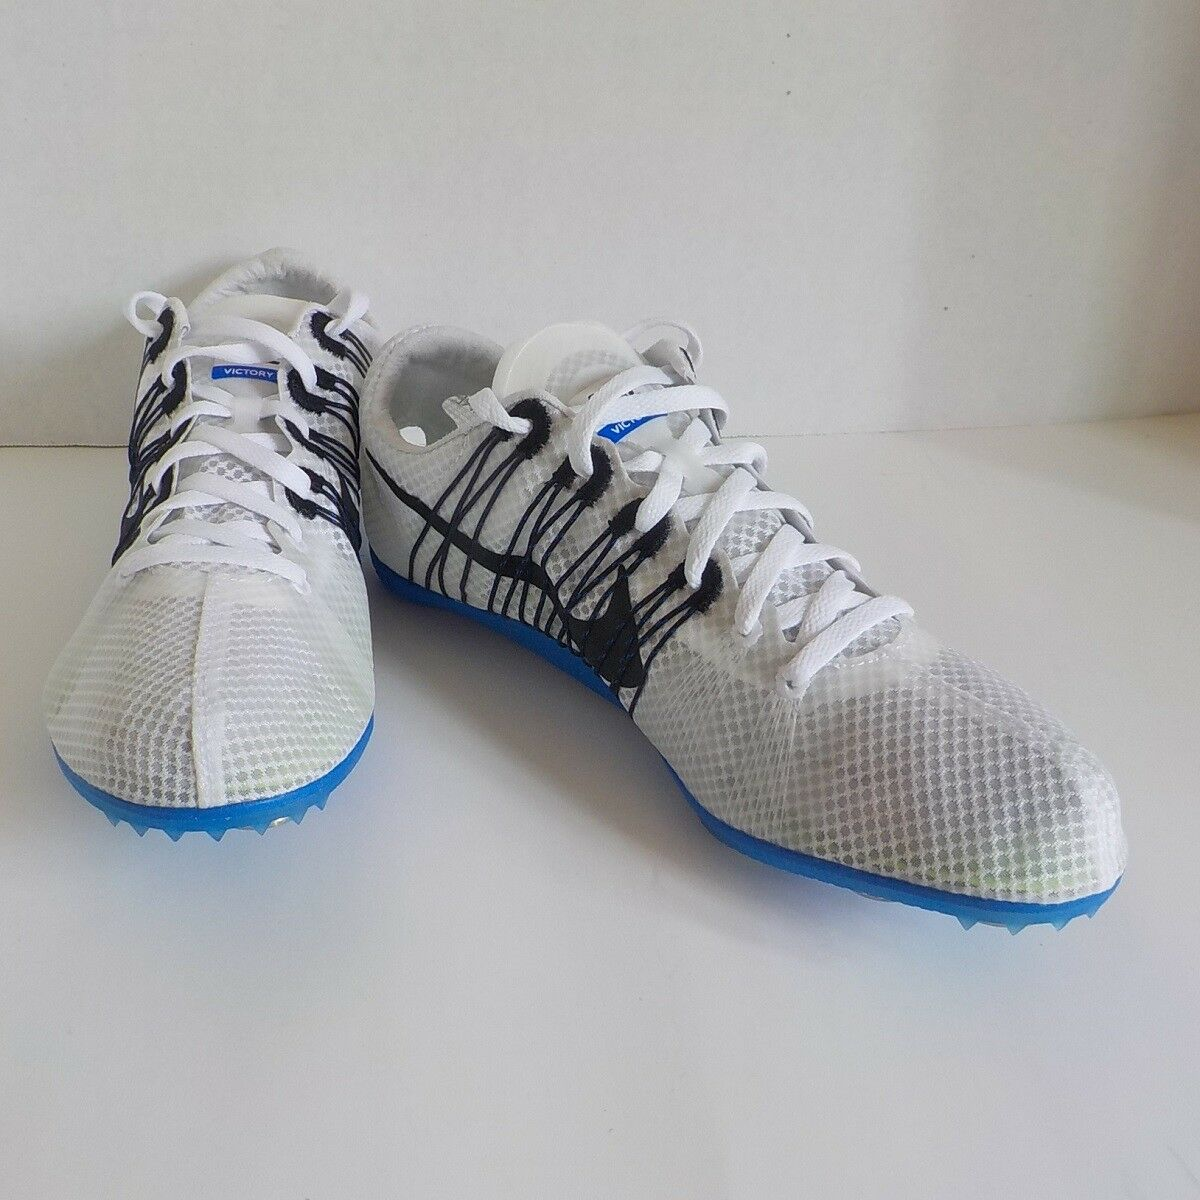 new style 4dae2 ddd31 ... Nike Zoom VICTORY VICTORY VICTORY 2 Distance Shoes WHITE BLUE 555365  100 MEN SIZE 7 ...